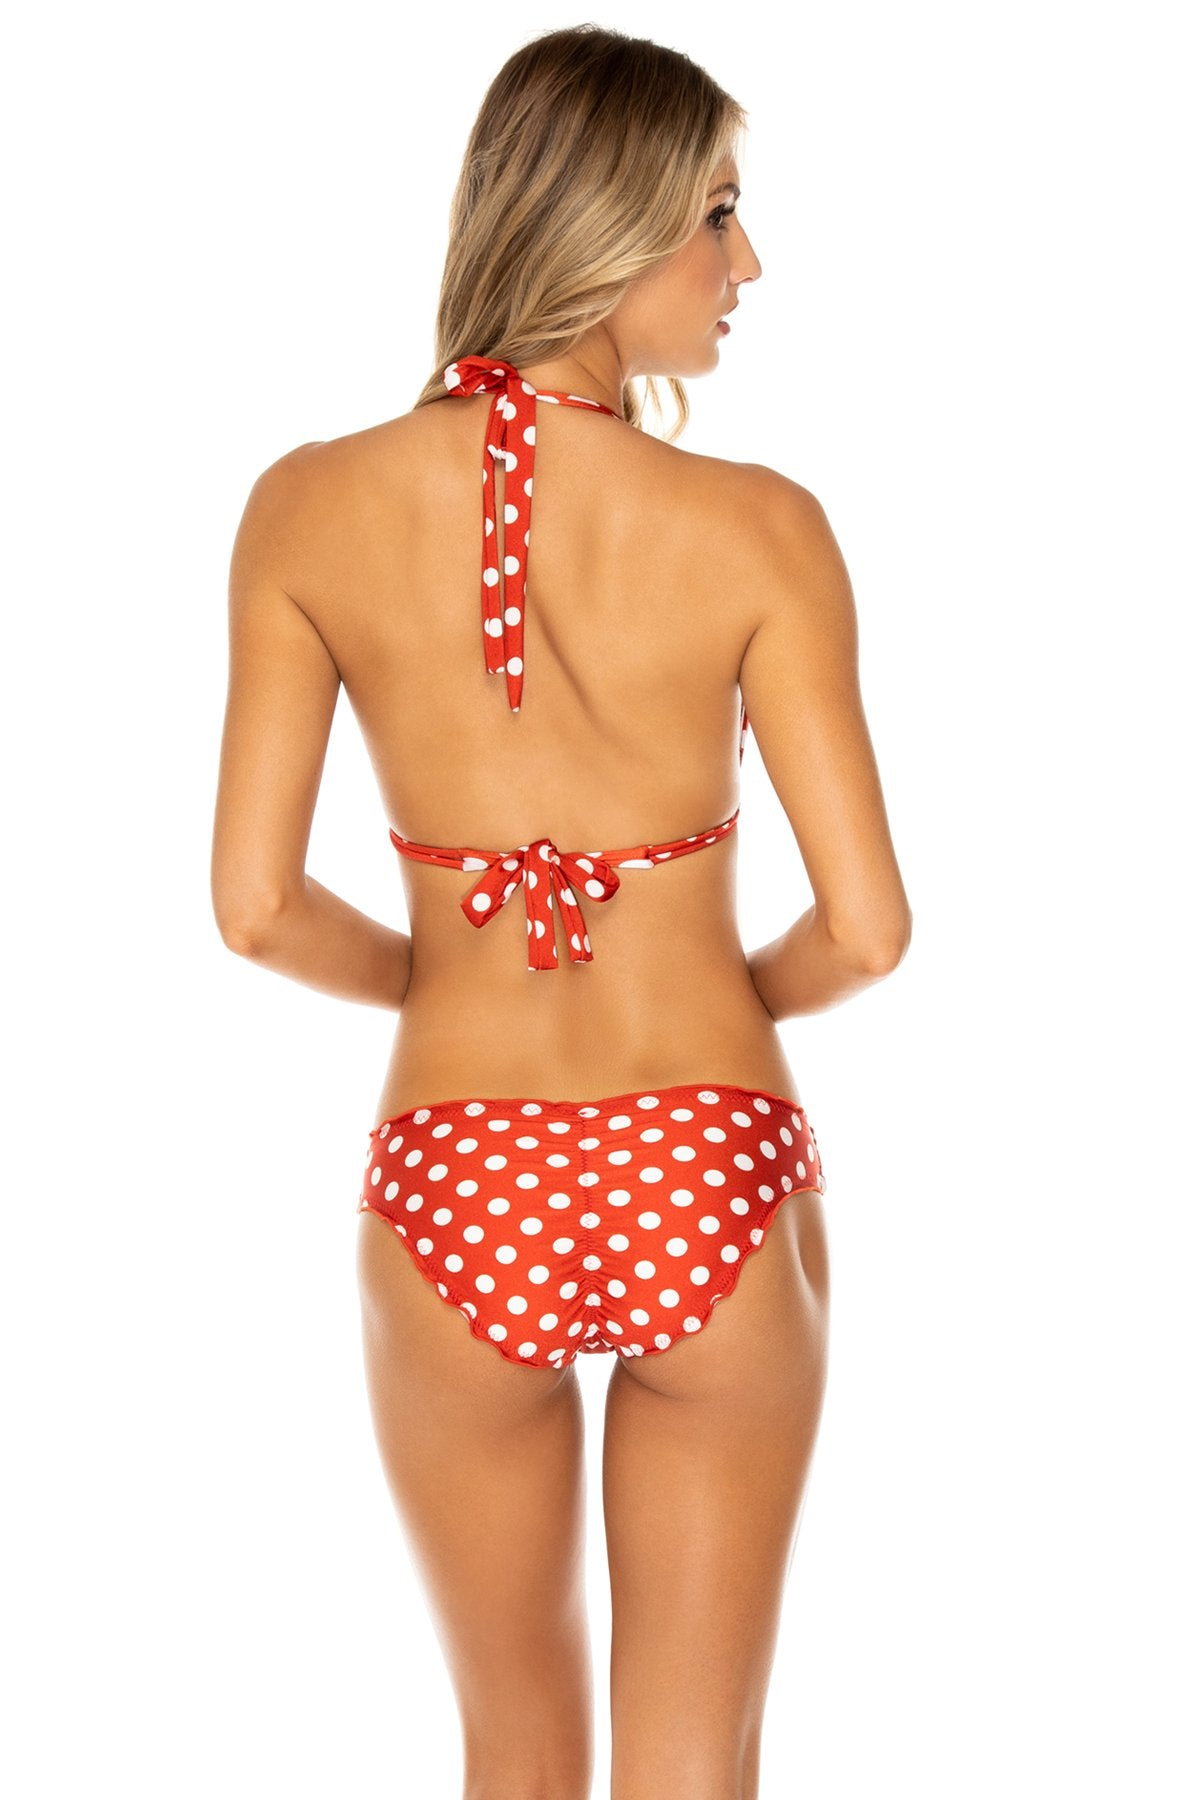 MACARENA - Triangle Halter Top & Seamless Full Ruched Back Bottom • Ole Red